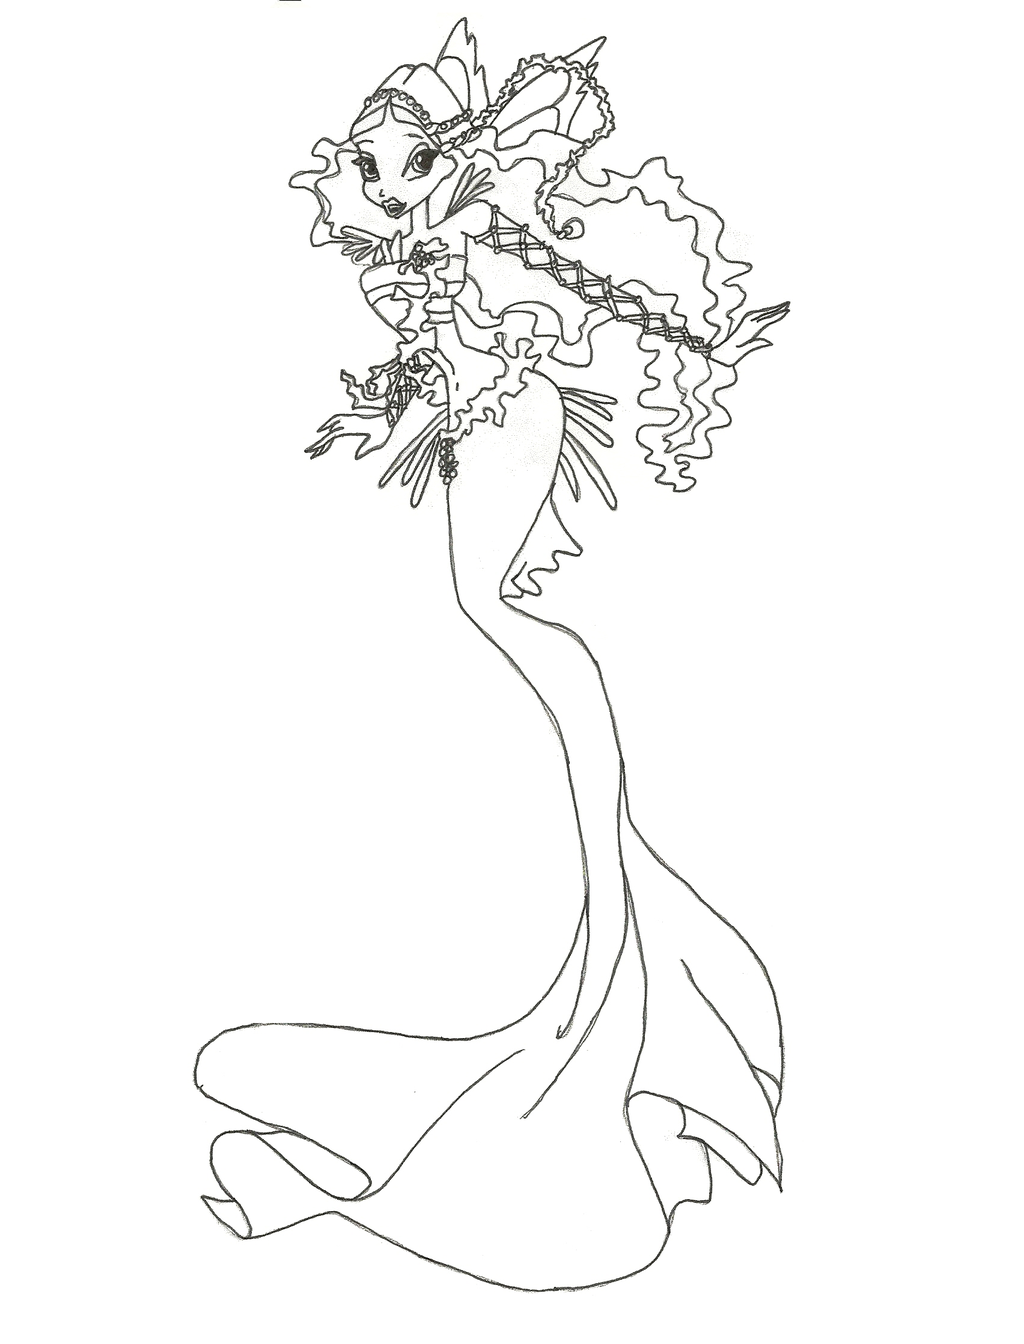 Winx Mermaid coloring pages, to print and download for free